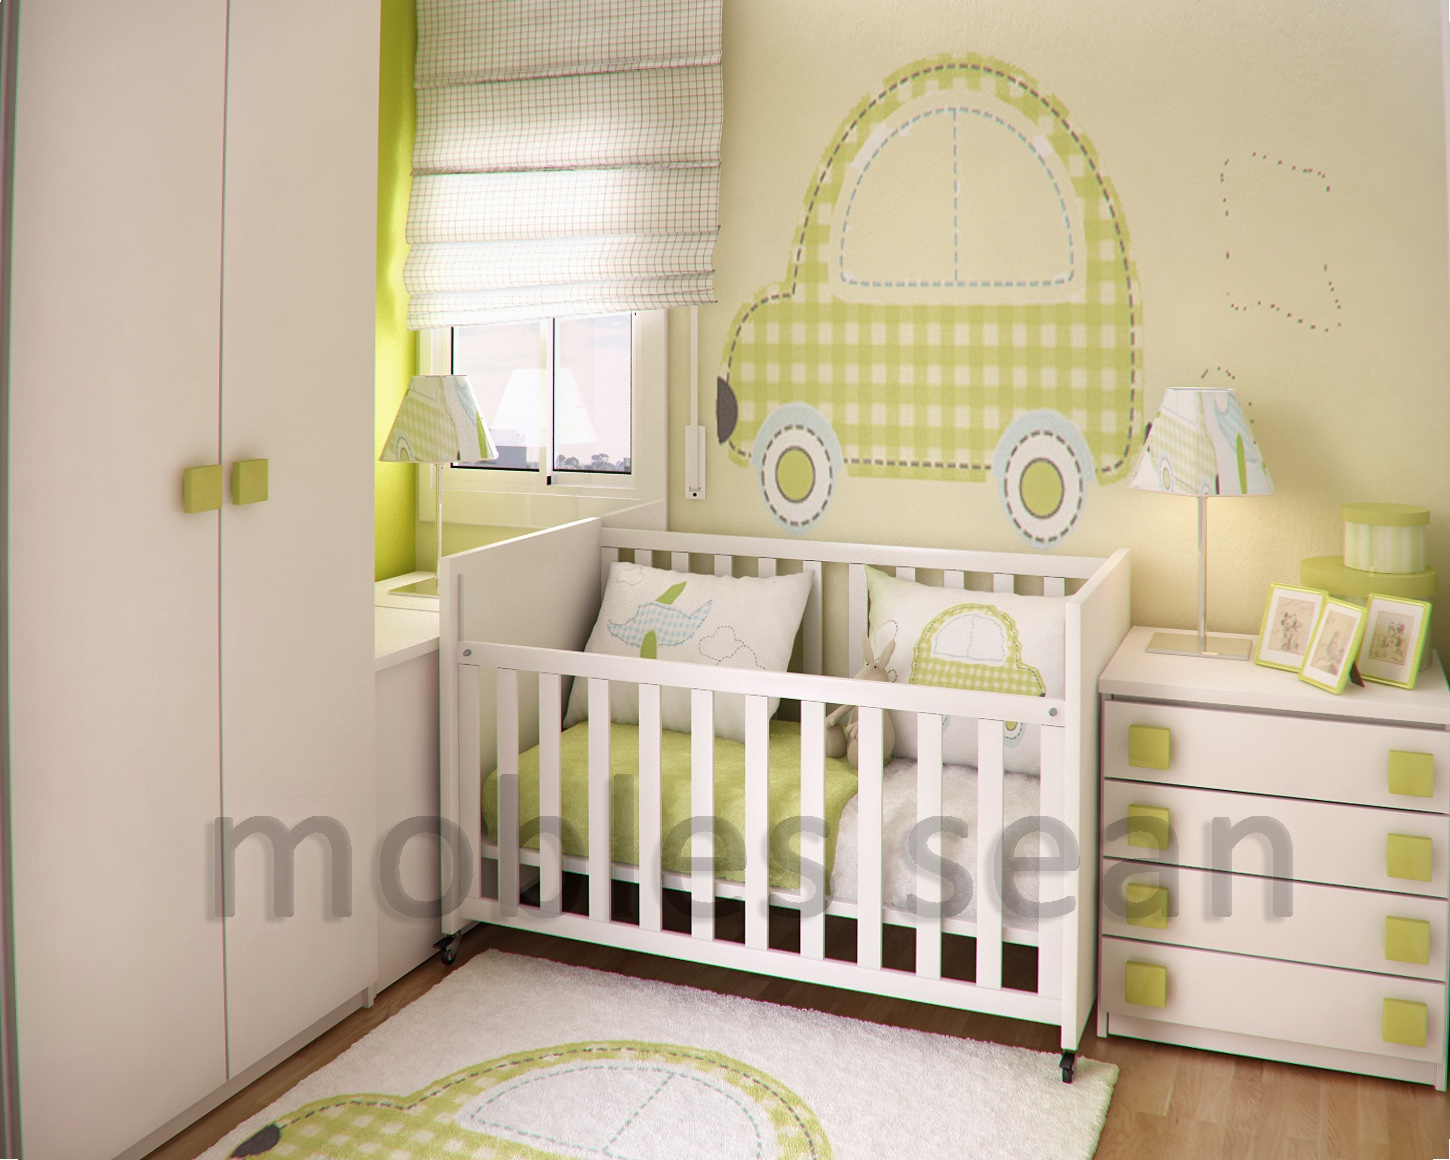 Remarkable Small-Room-Baby-Nursery-Ideas 1450 x 1160 · 468 kB · jpeg